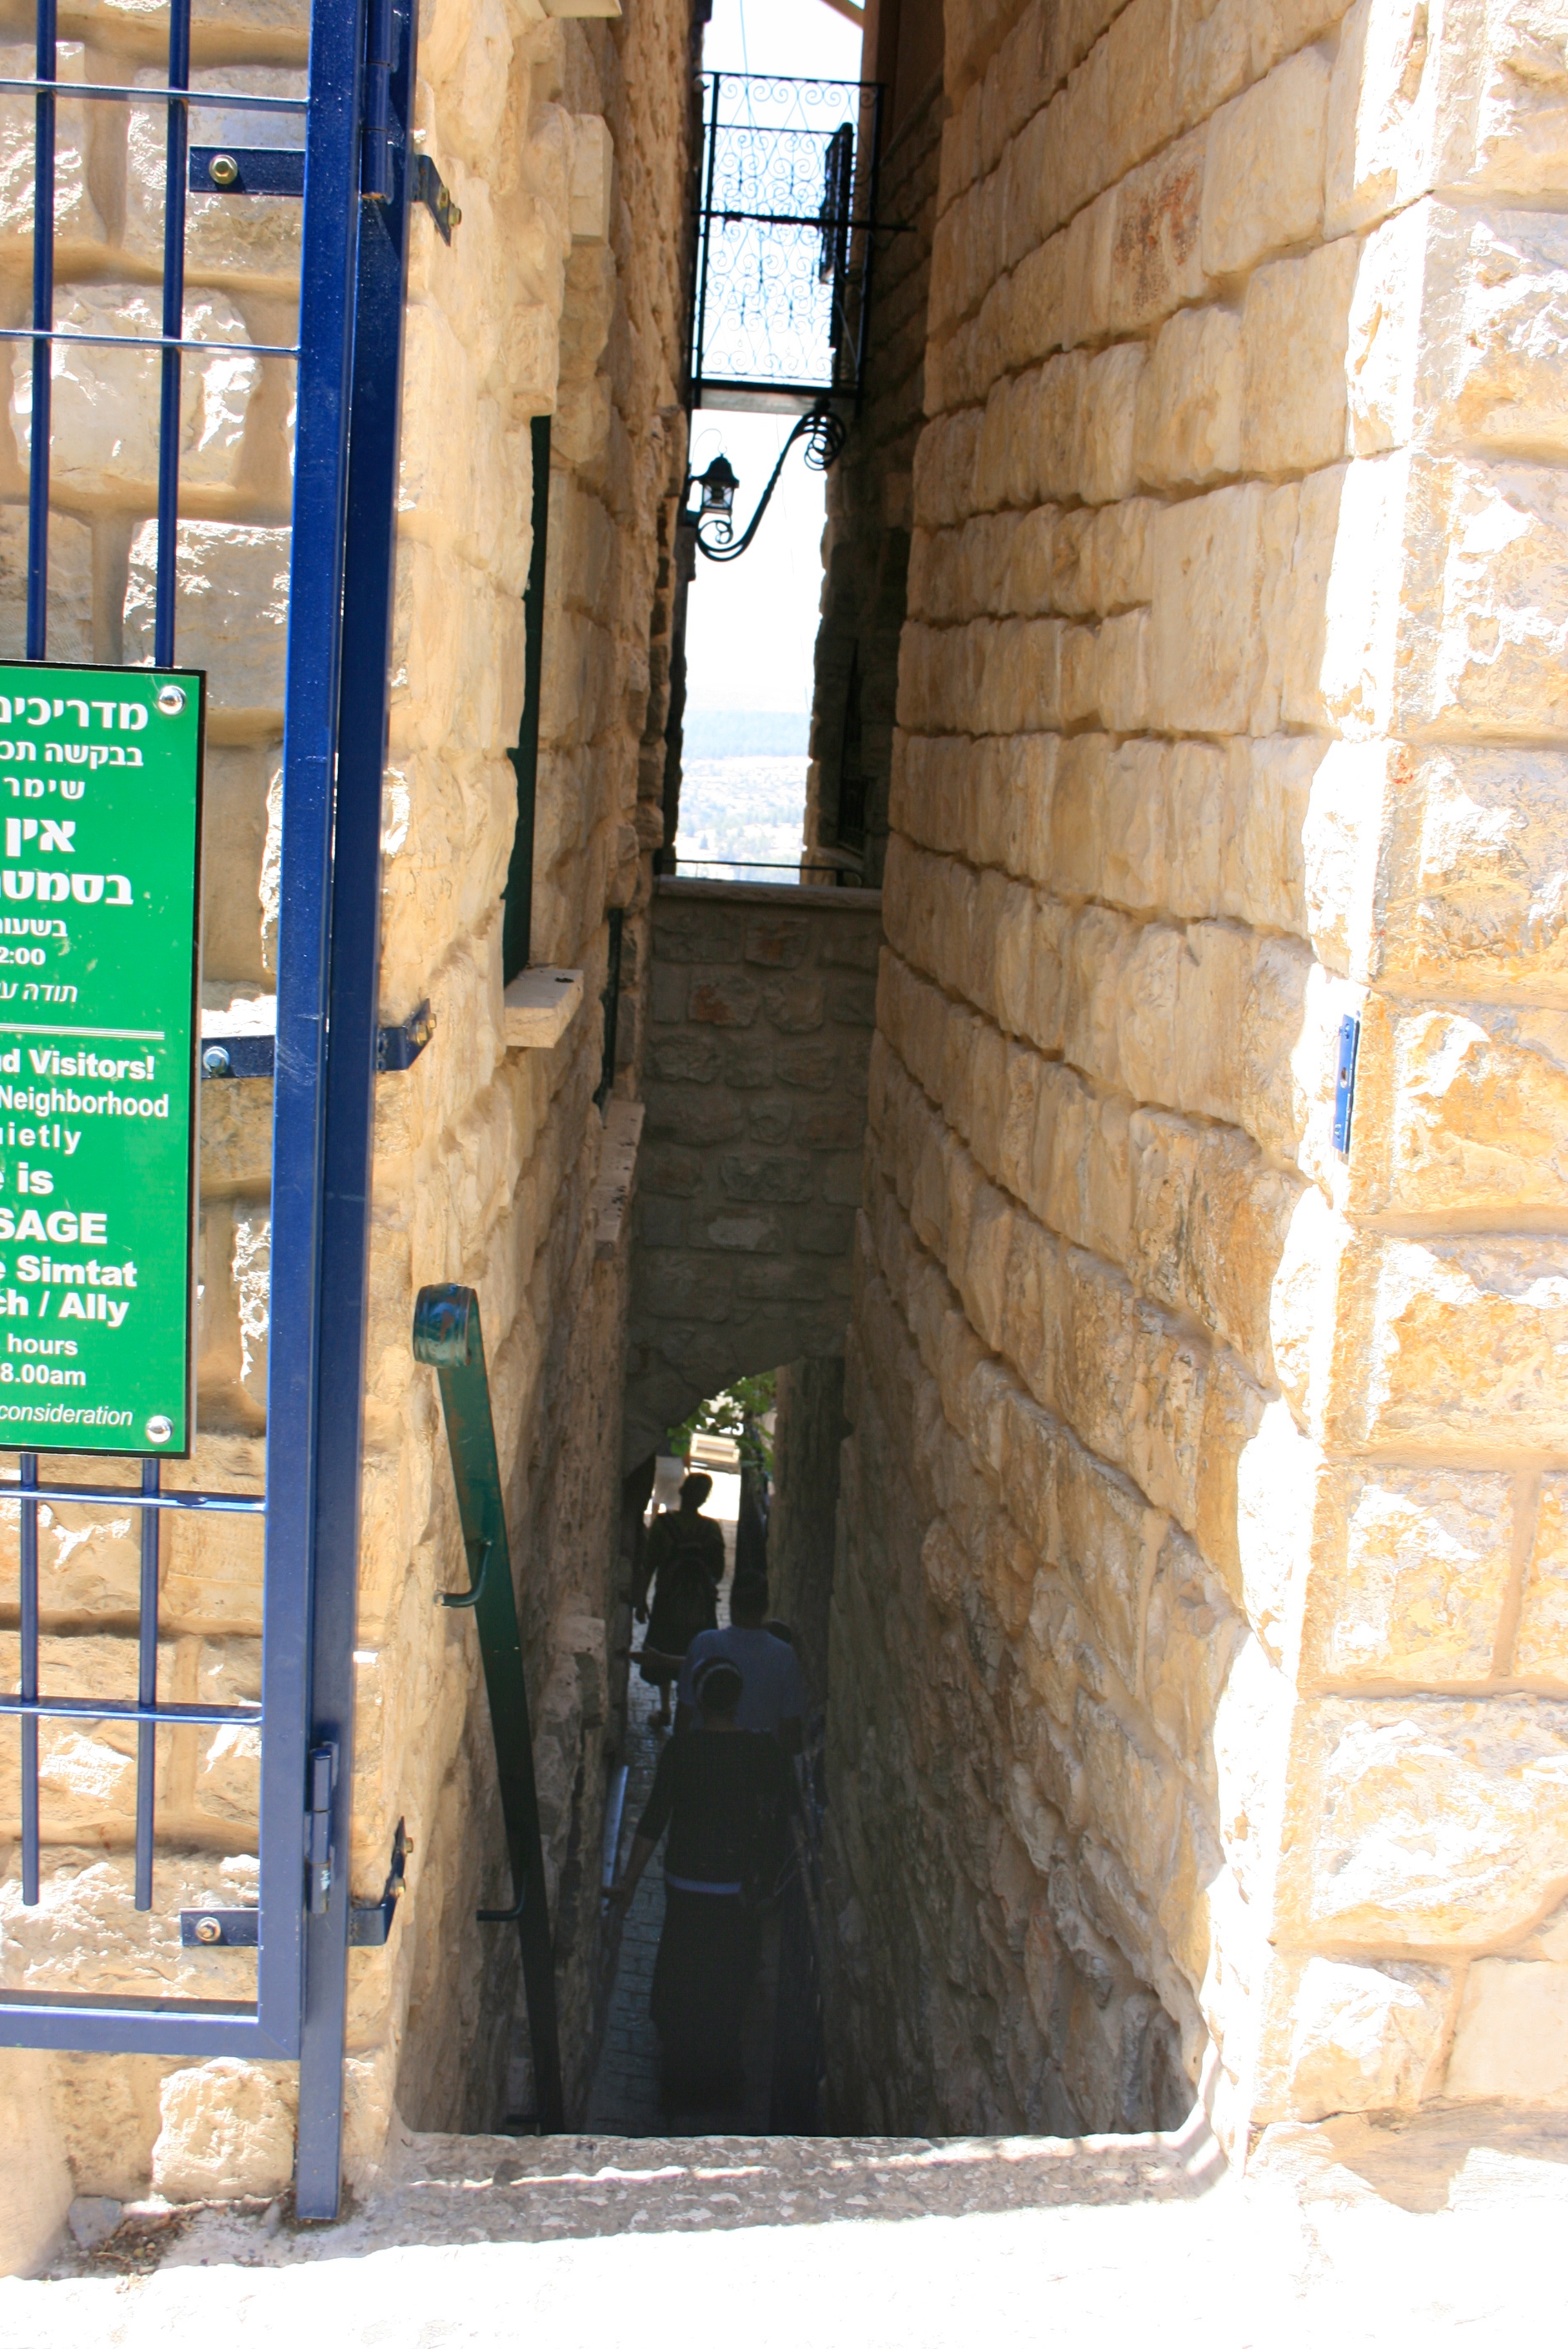 Messiah's Alley in Tsfat, where one tradition holds that the Messiah will appear upon his entrance to Tsfat. Yocheved Rosenthal climbed these stairs everyday for decades, anticipating his arrival.